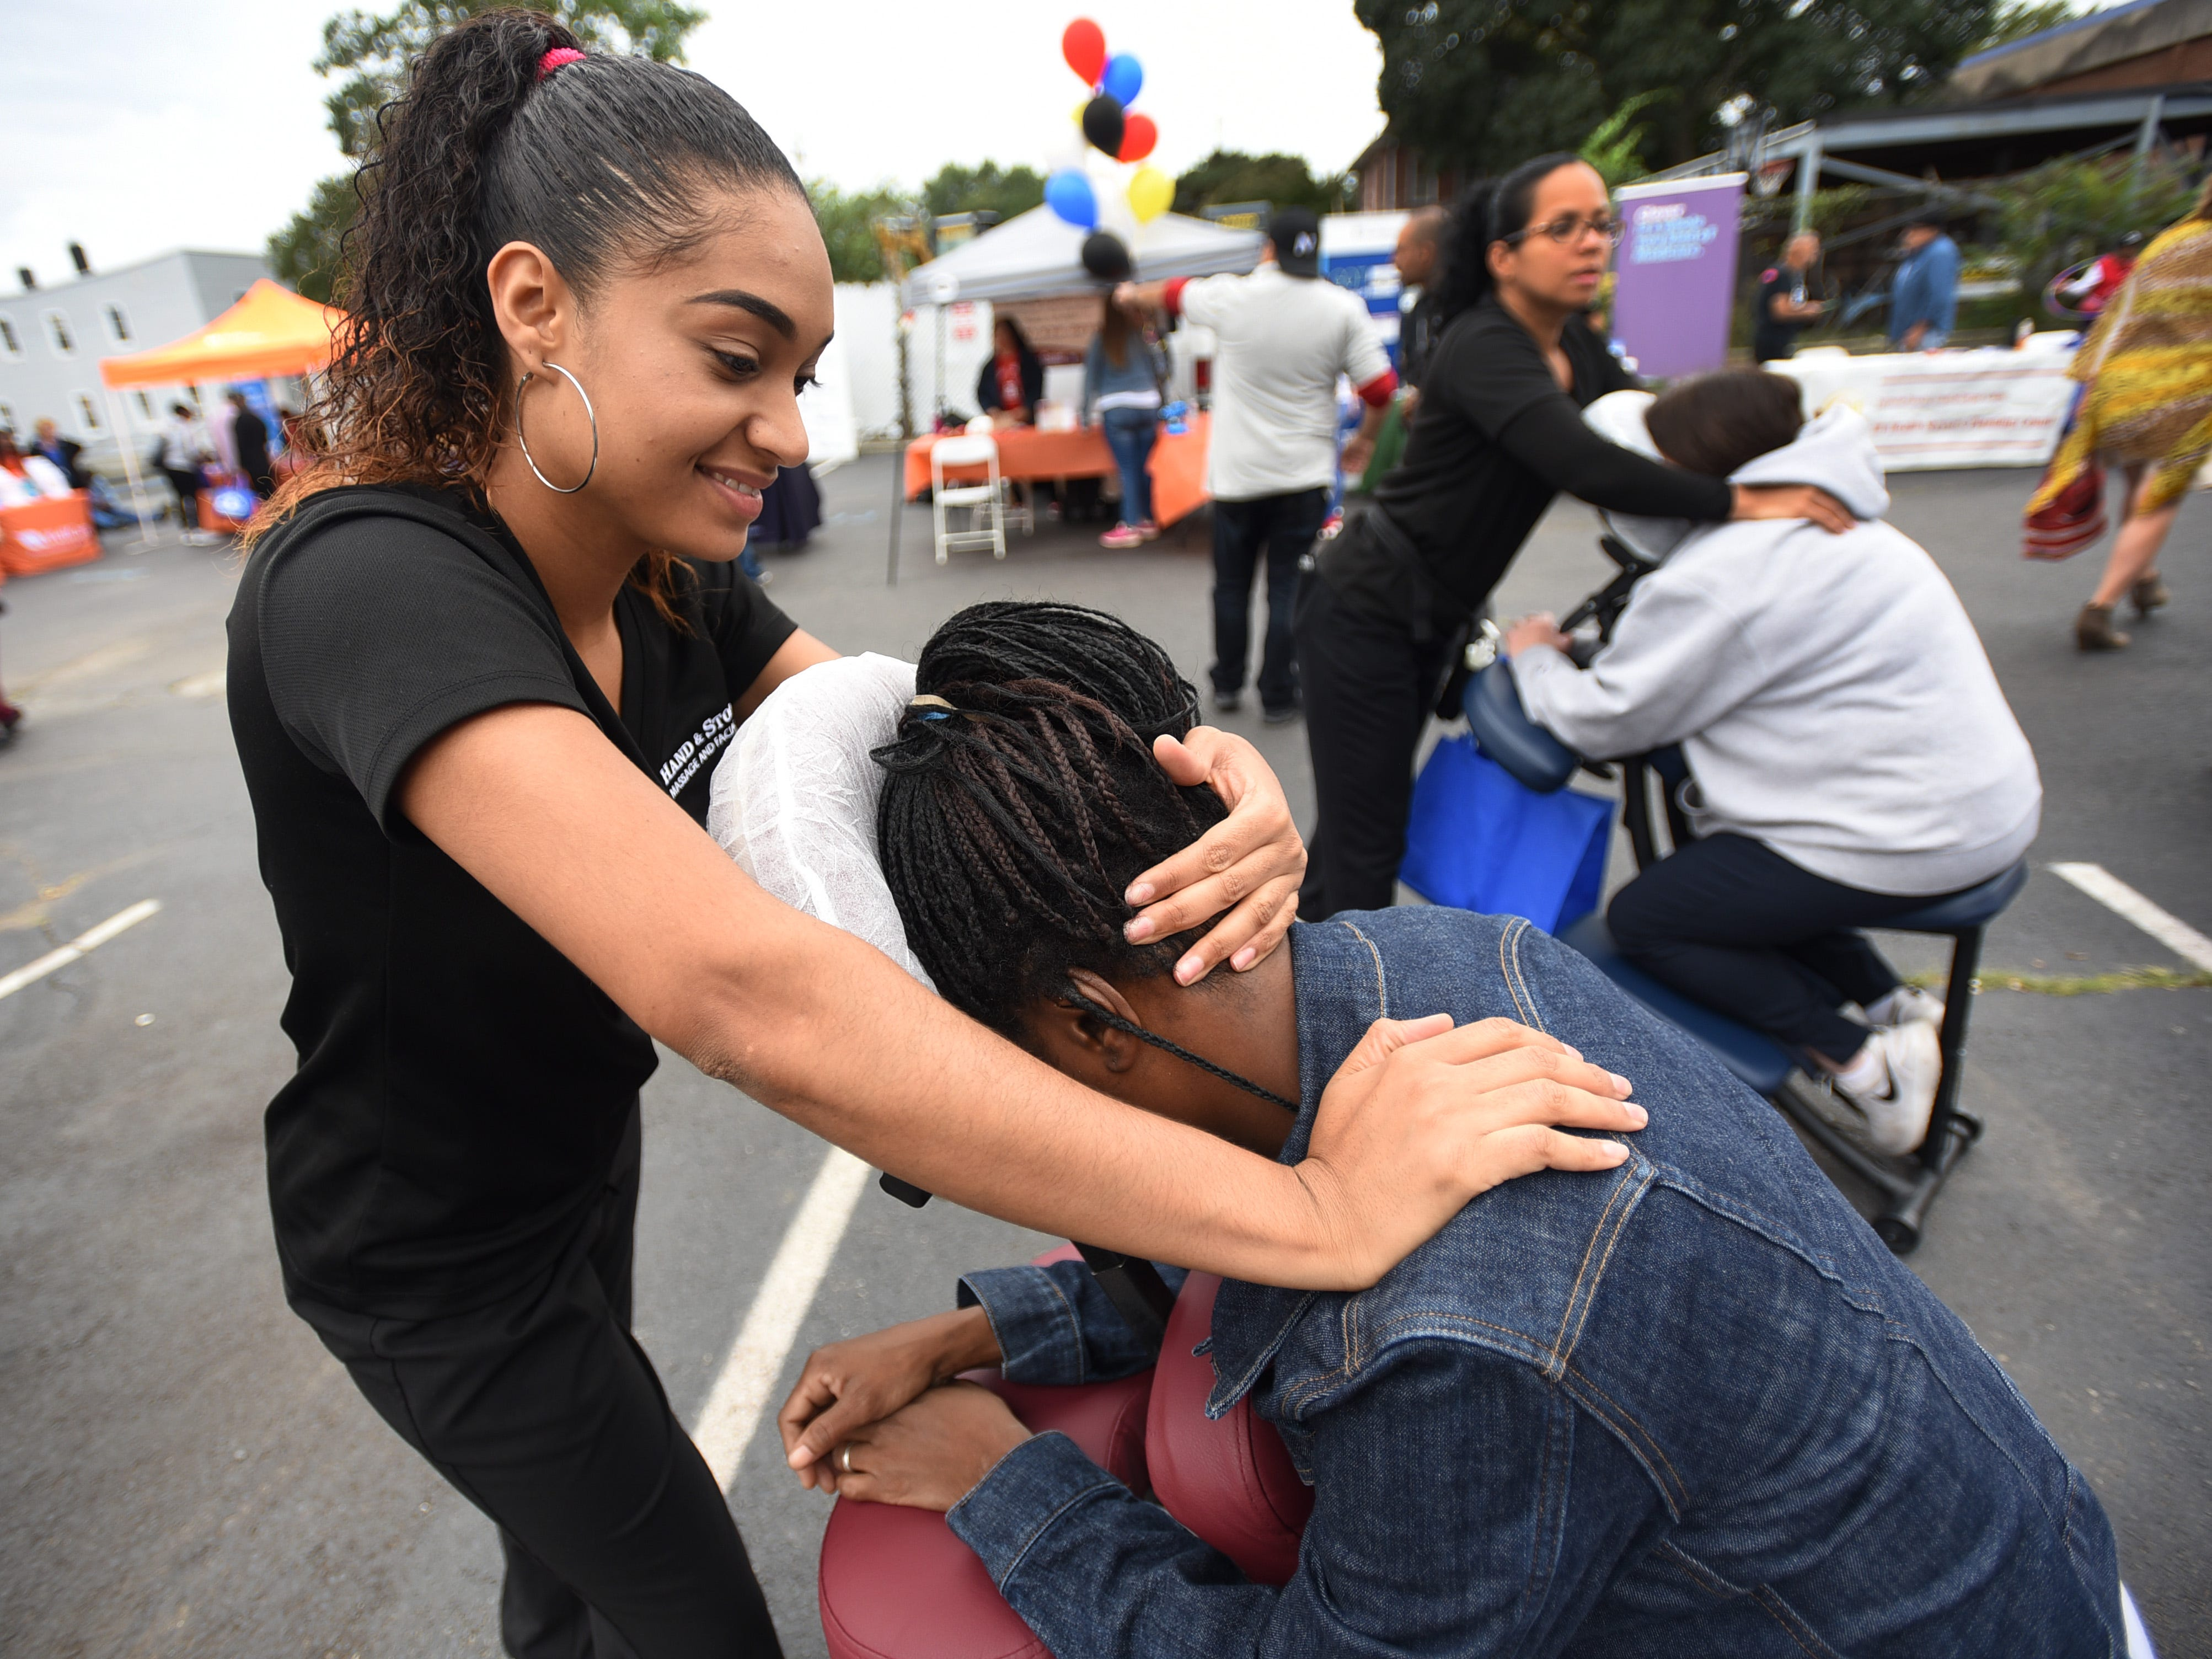 Welin Osorico of Hand & Stone, gives a massage to Felicia Smith of Hackensack during the first annual Resource and Community Wellness Fair held by Buddies of NJ in Hackensack on 0923/18. The Buddies support people living with or affected by HIV/AIDS